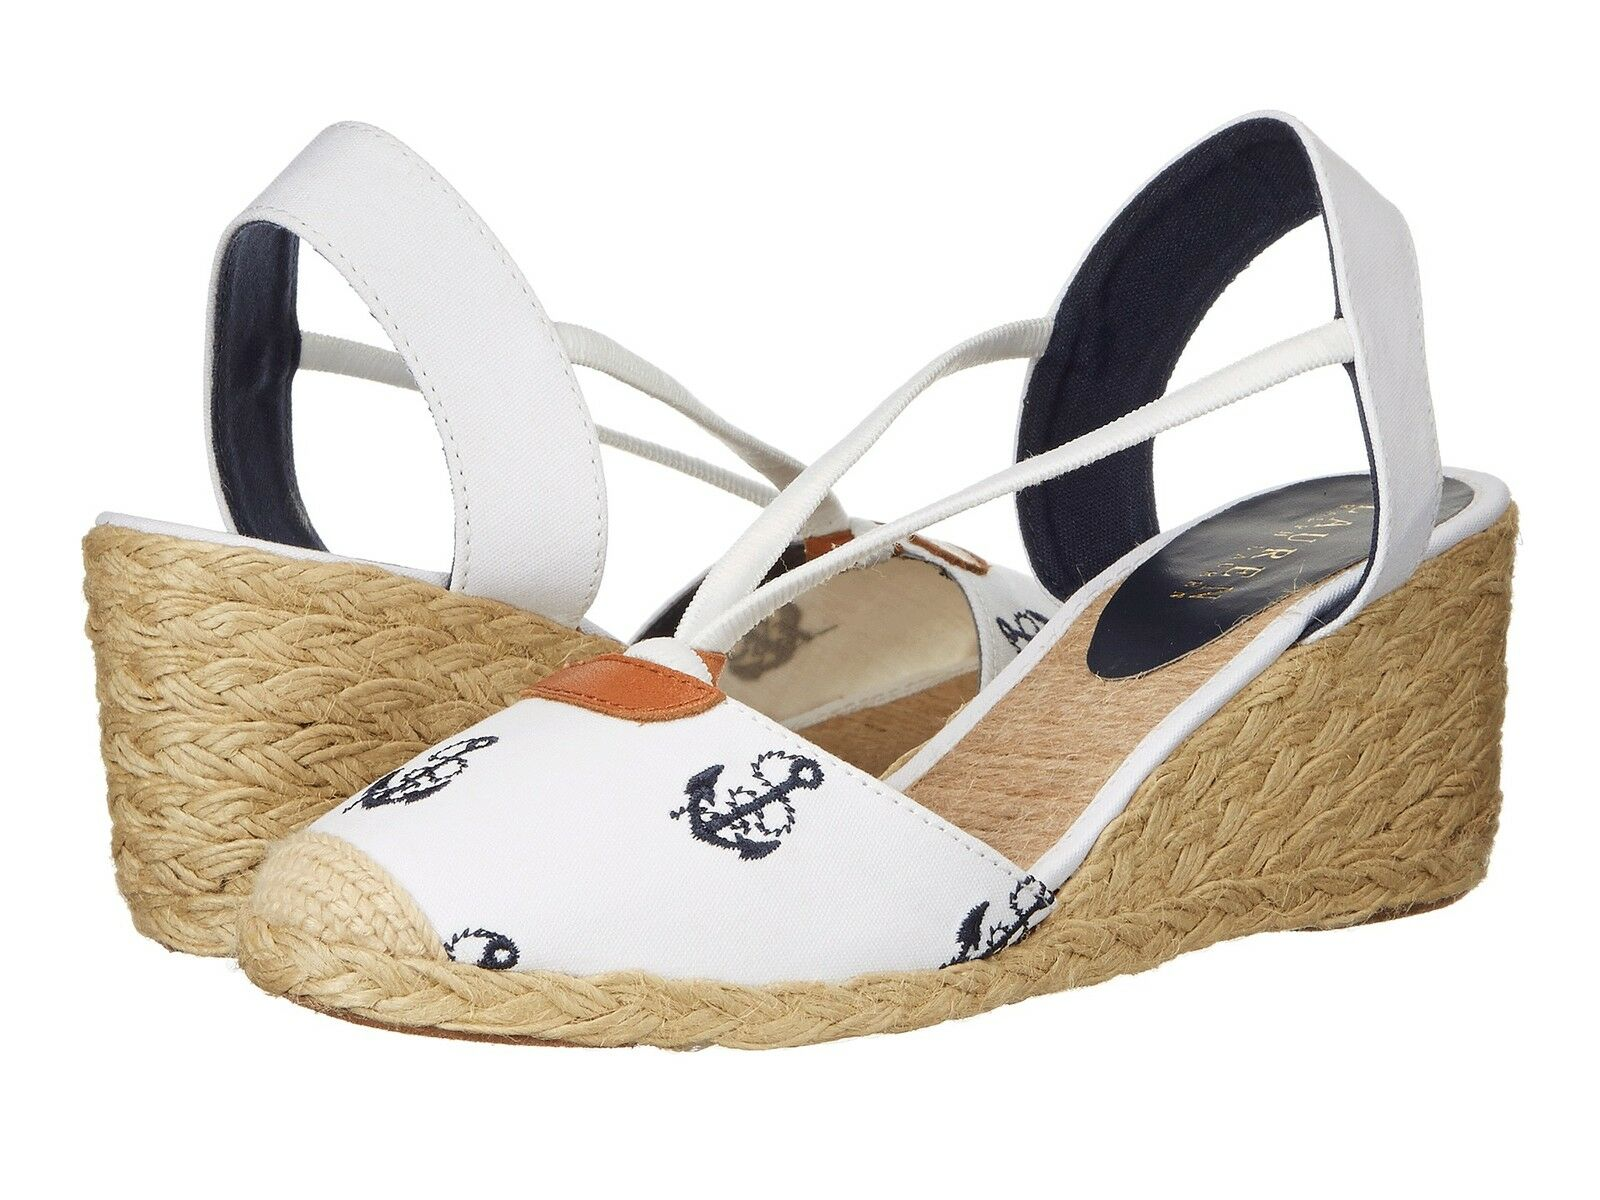 RALPH LAUREN CALA WHITE NAVY ANCHOR ESPADRILLES WEDGE SANDAL SHOES MULTISIZES